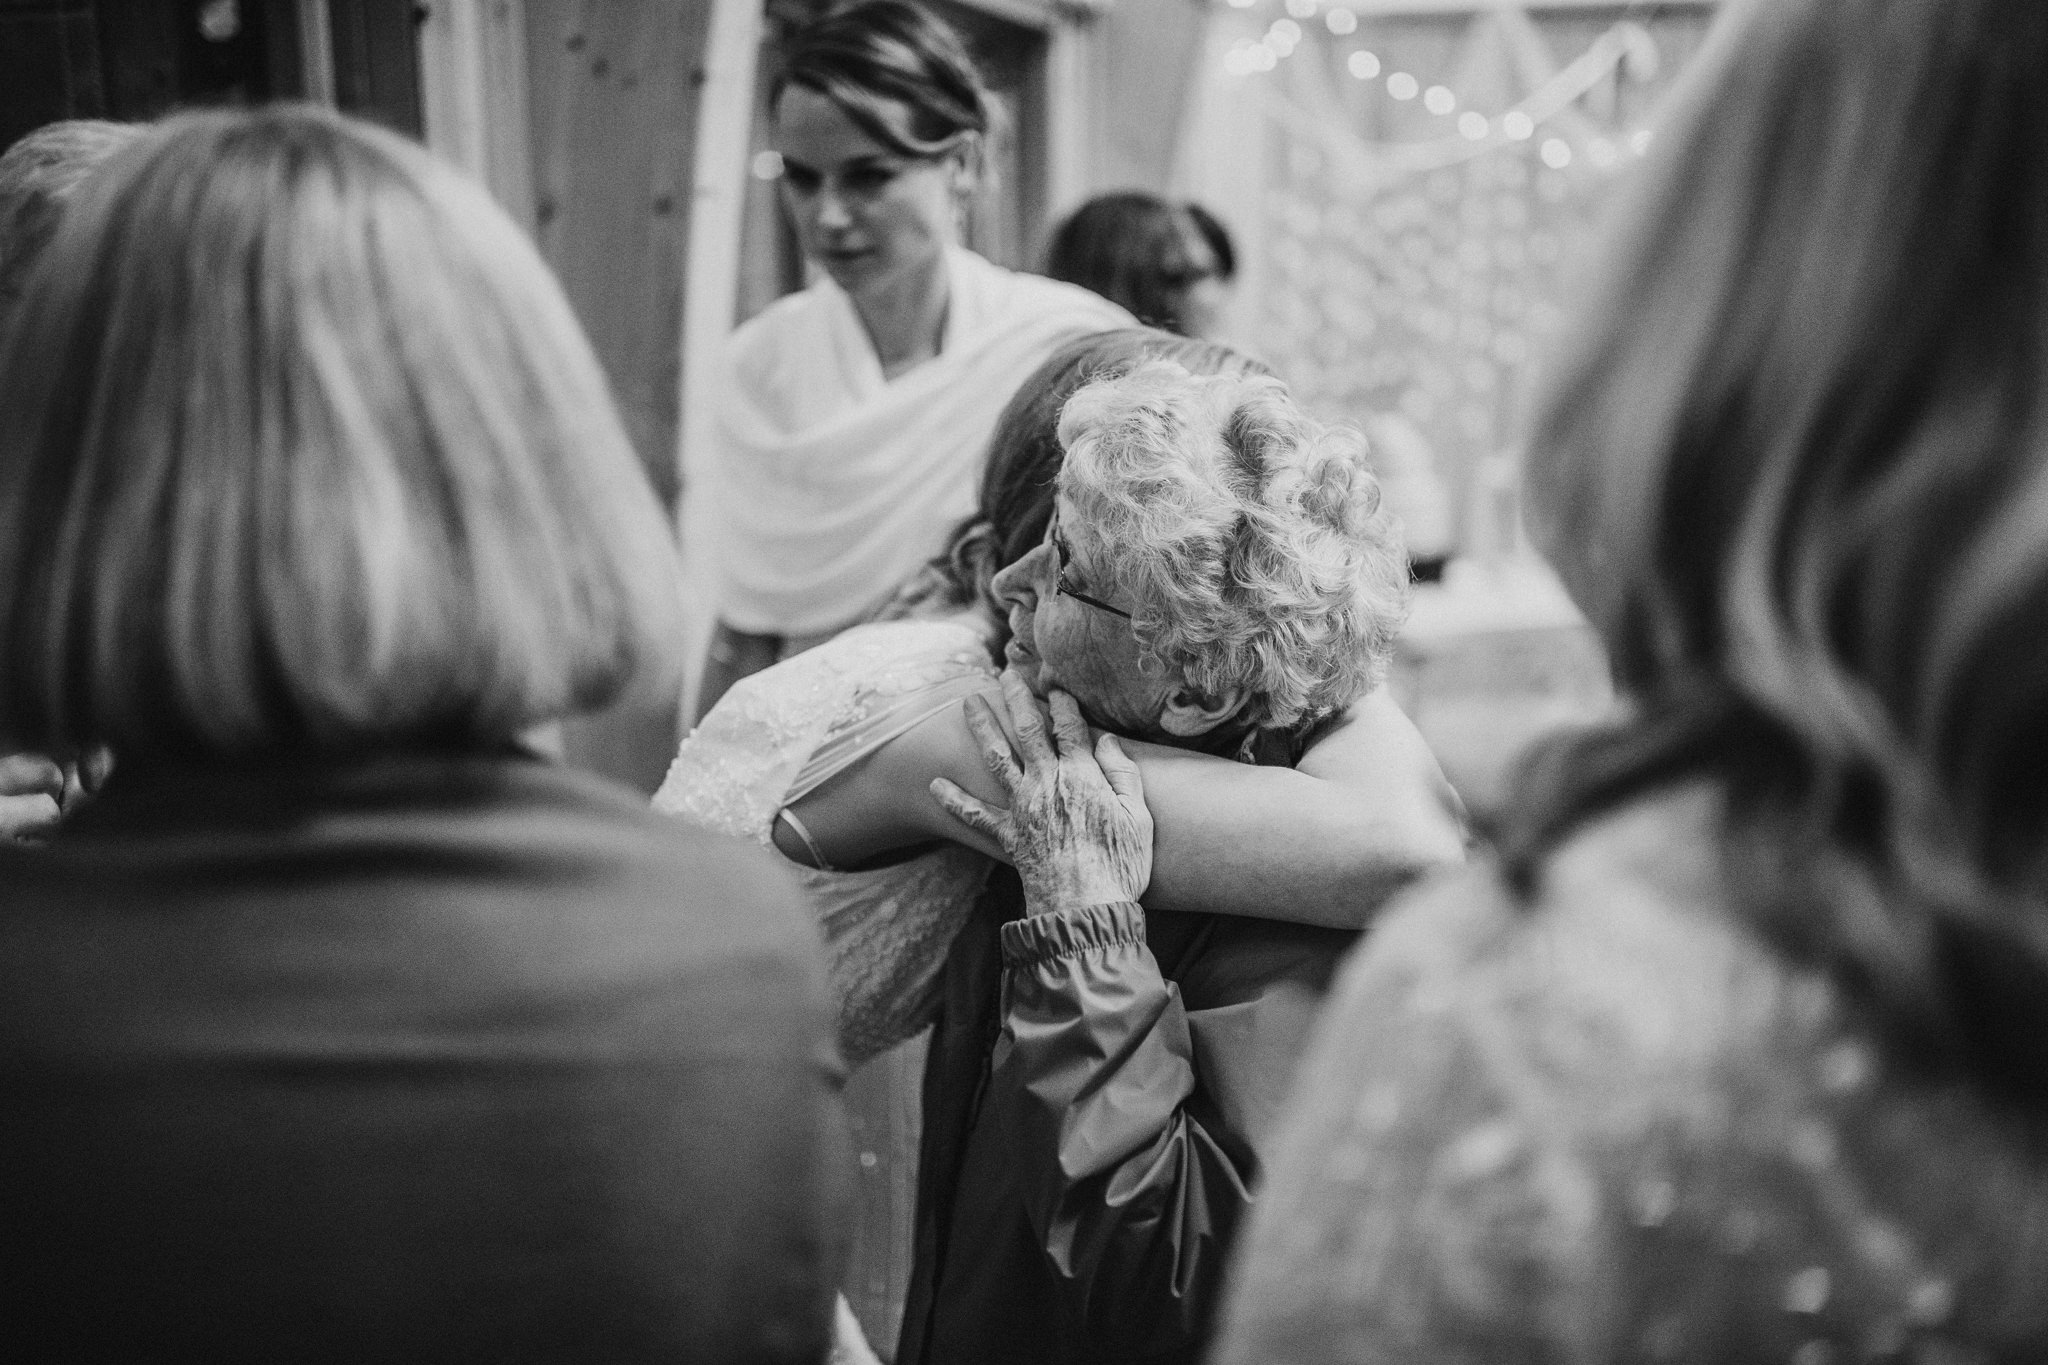 A wedding guest is hugging the bride.